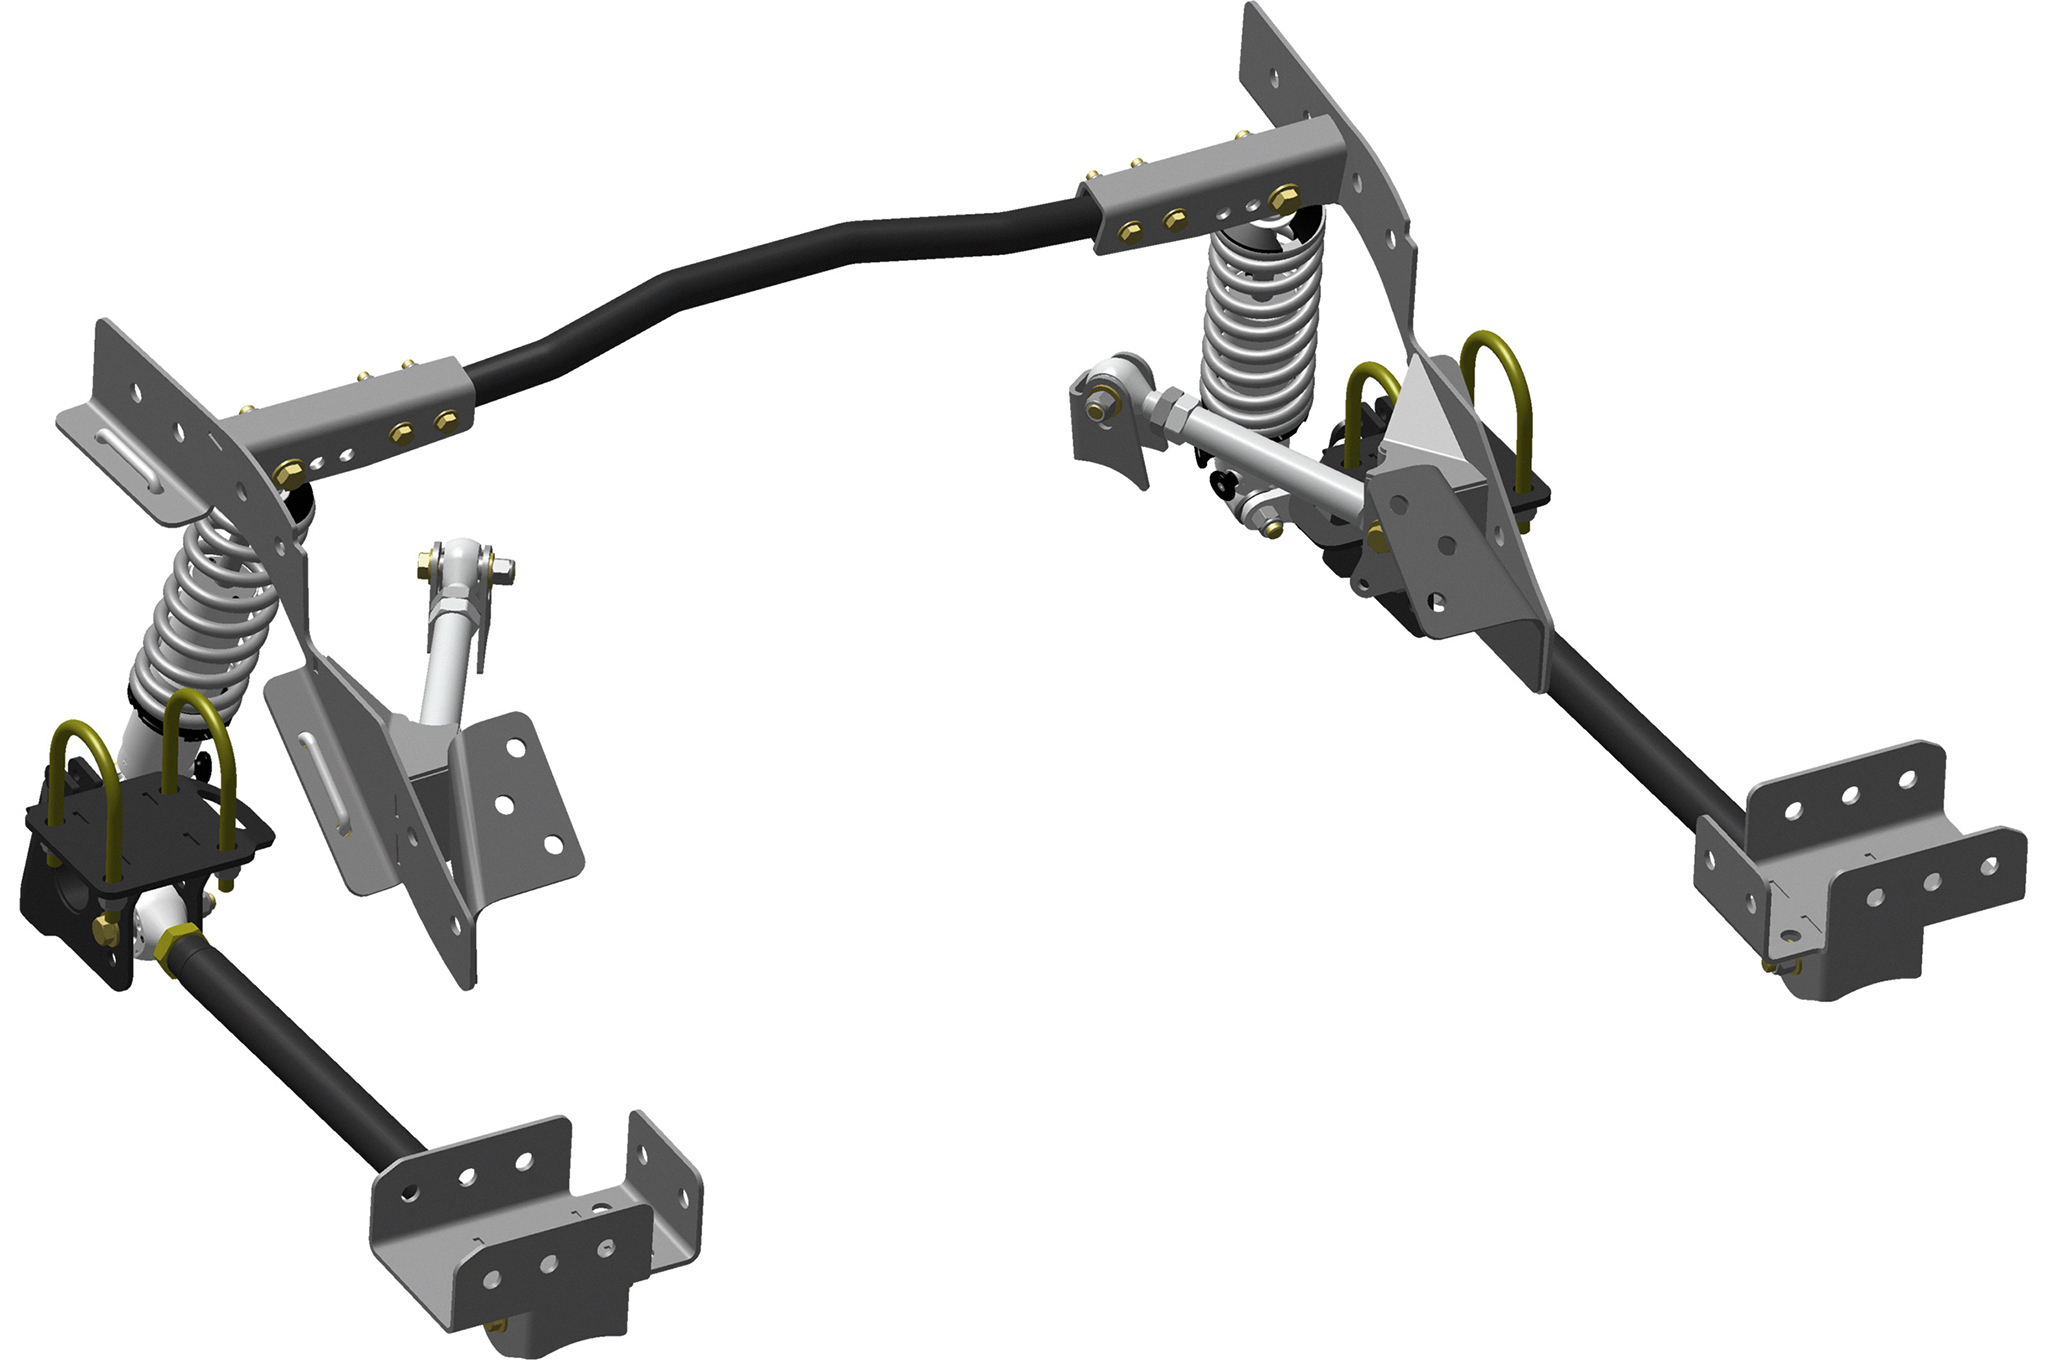 This is the Chris Alston Chassisworks g-Link (Pivot) Coil-Over Suspension for Chevy II, one of many variations of Pro Touring Rear Suspension Systems.